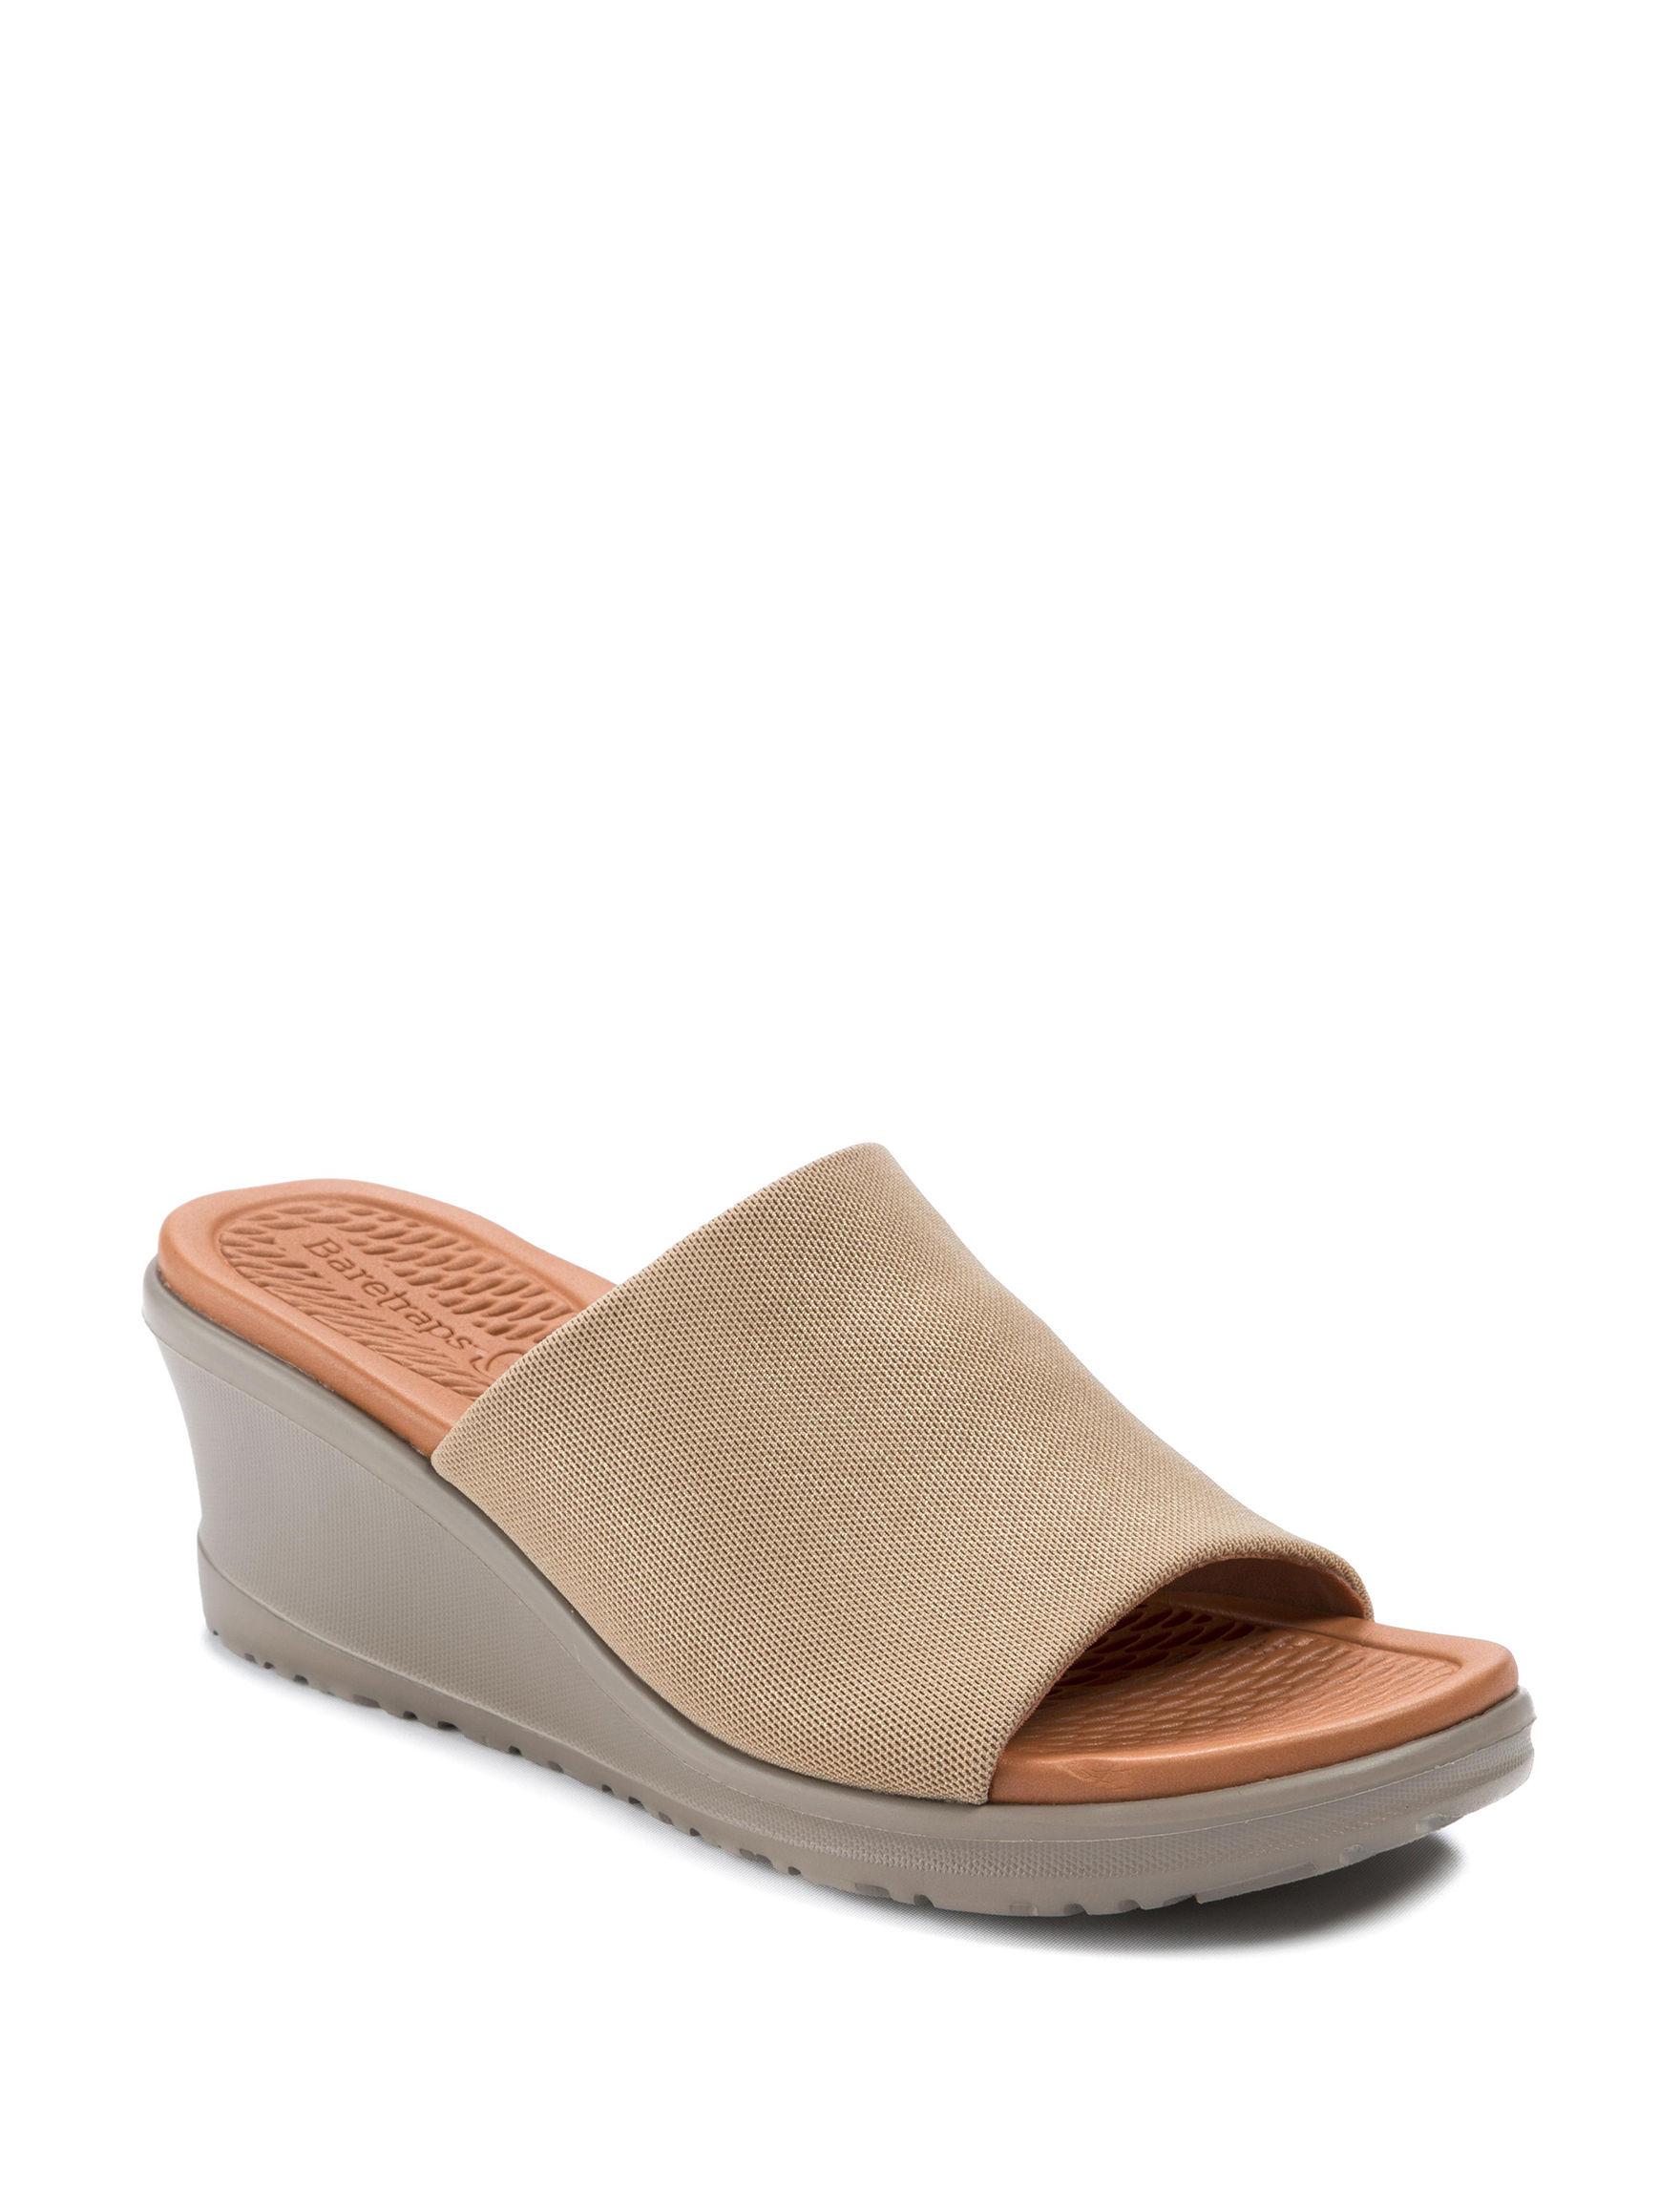 Bare Traps Gold Wedge Sandals Comfort